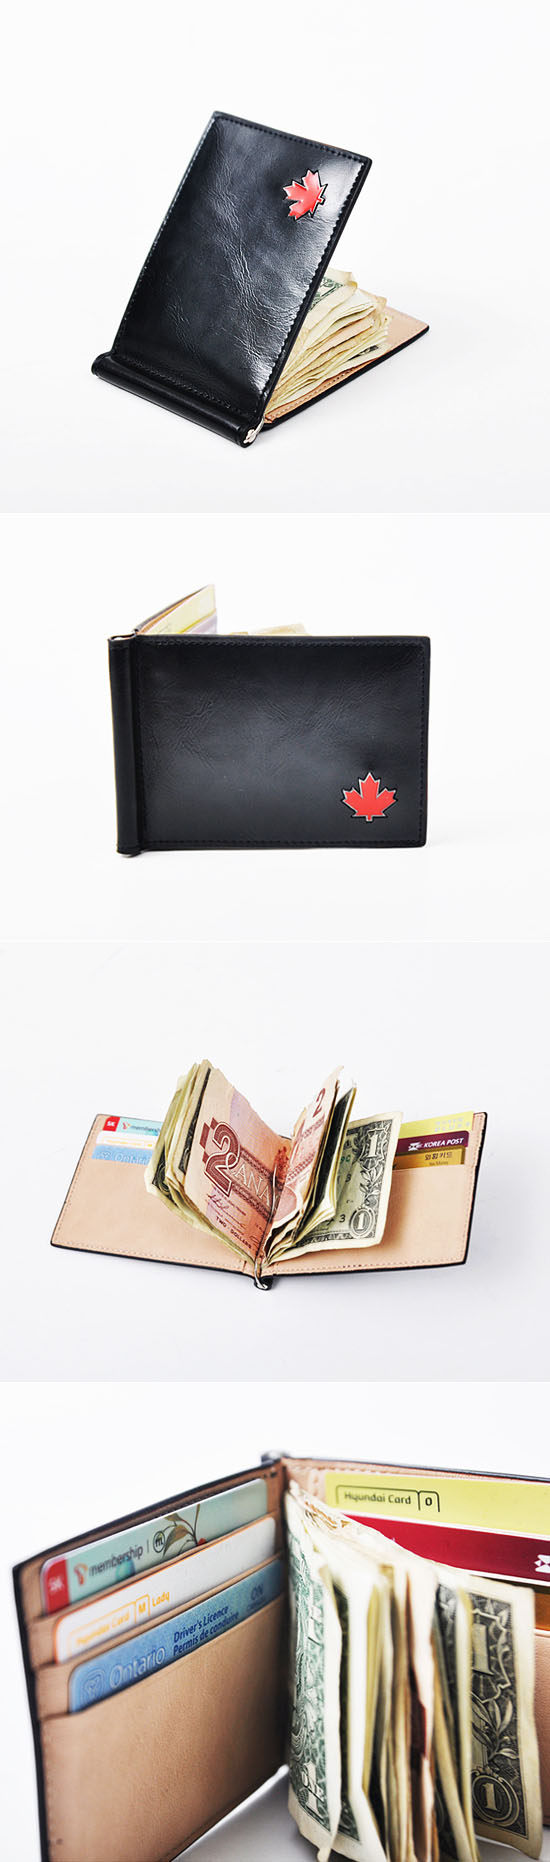 Accessories :: Wallets :: Designer Motive Canada Money Clip-Wallet 13 - Mens Fashion Clothing For An Attractive Guy Look